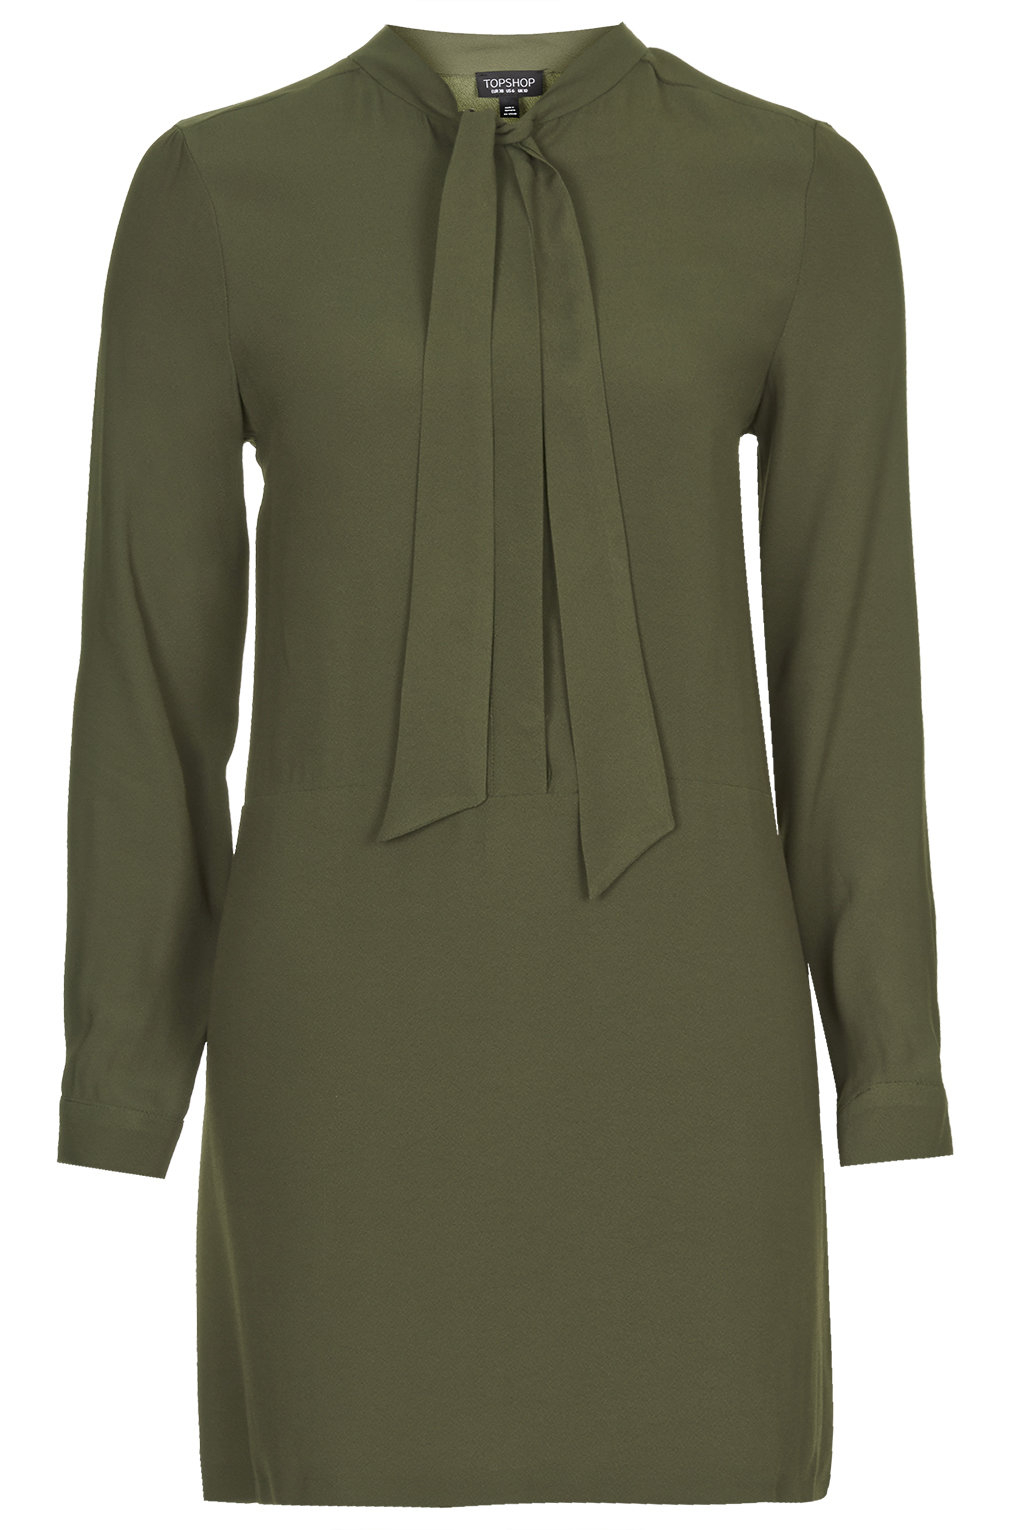 Find great deals on eBay for khaki shirts for women. Shop with confidence.